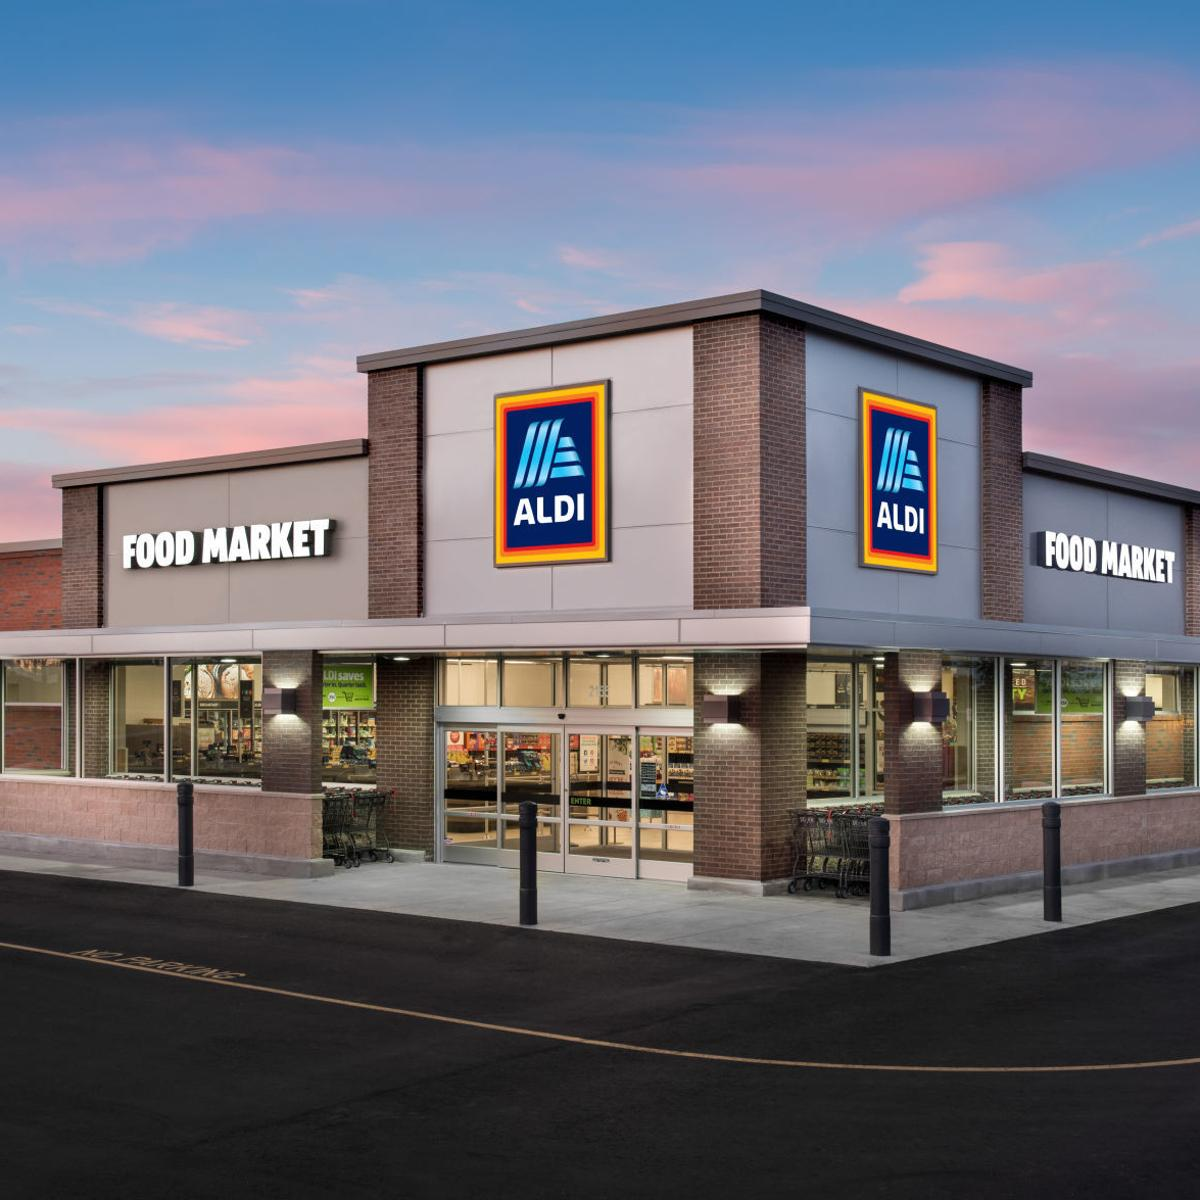 Aldi discount grocery chain coming to Sioux City in 2019 | Local